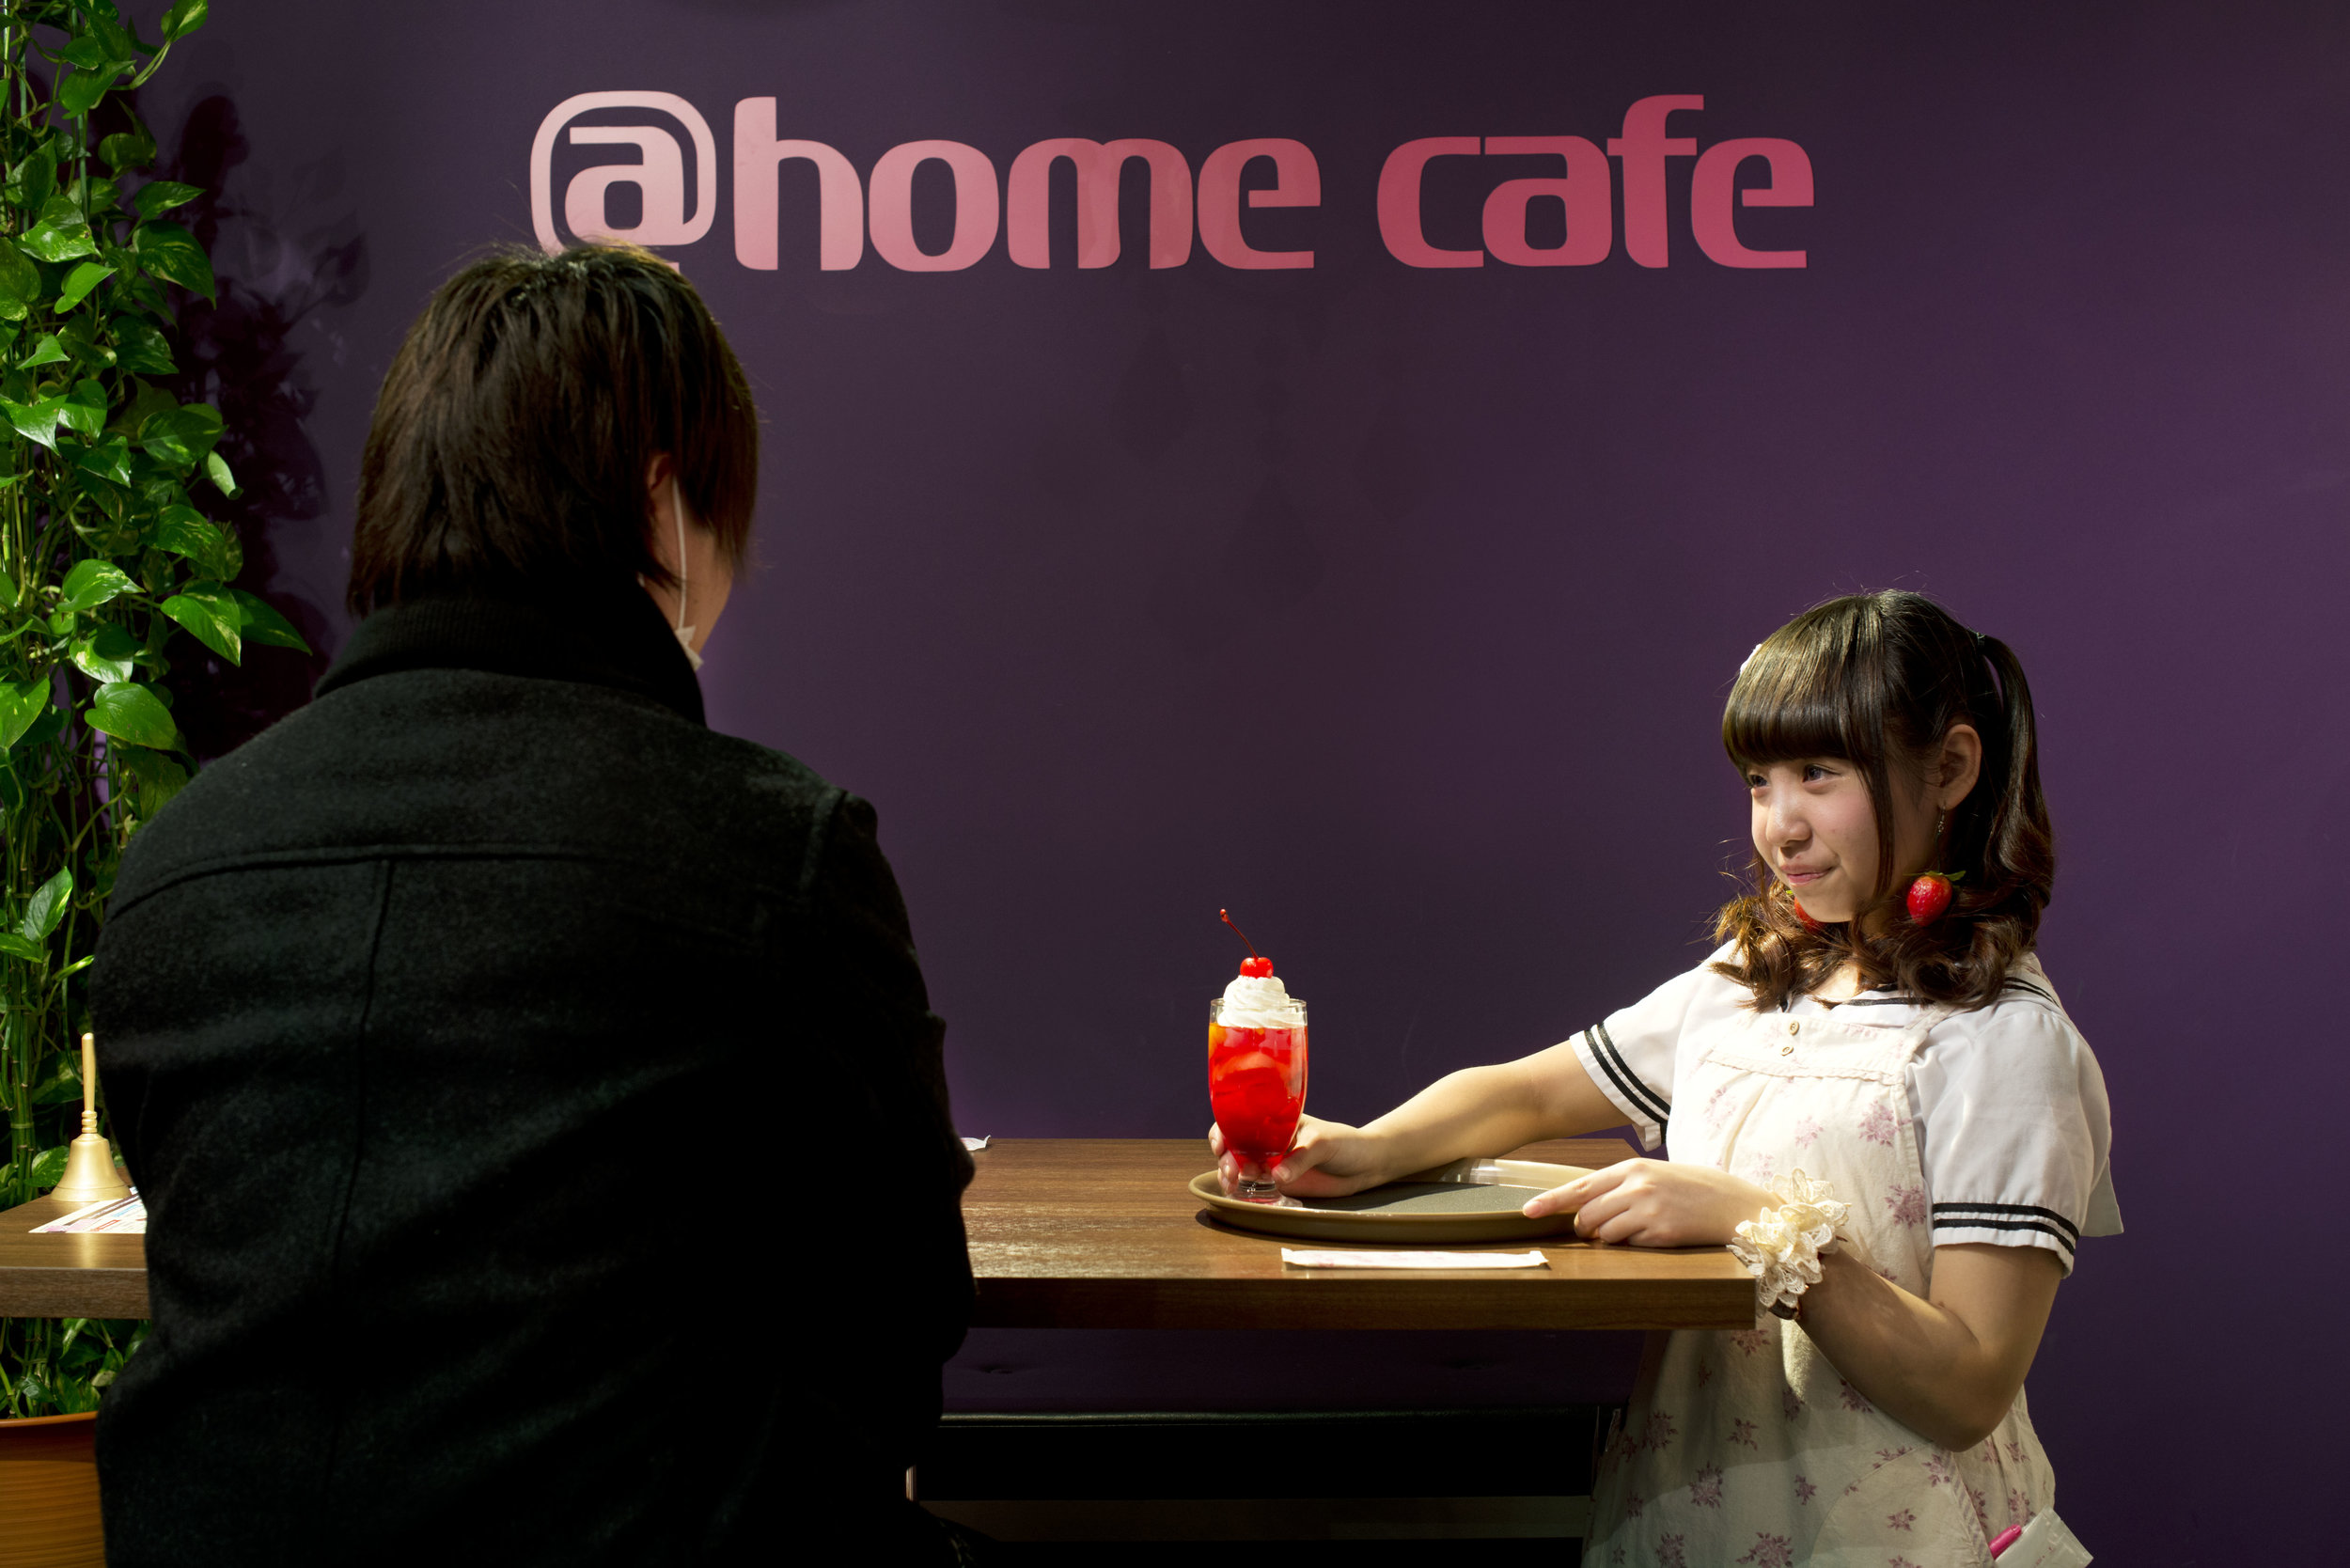 """The @Home Café, Akihabara, Tokyo, Japan  At this café young women dress in uniforms inspired by the garb worn by a traditional French maid. As patrons walk through the door they are greeted with a cry of """"Welcome home, Master!"""" A variety of foods and services- including massages, ear cleanings, rock paper scissors competitions, and board games are offered by smiling """"maids.""""  Japan's population is expected to drop from 127 million in 2014 to 87 million in 2060."""